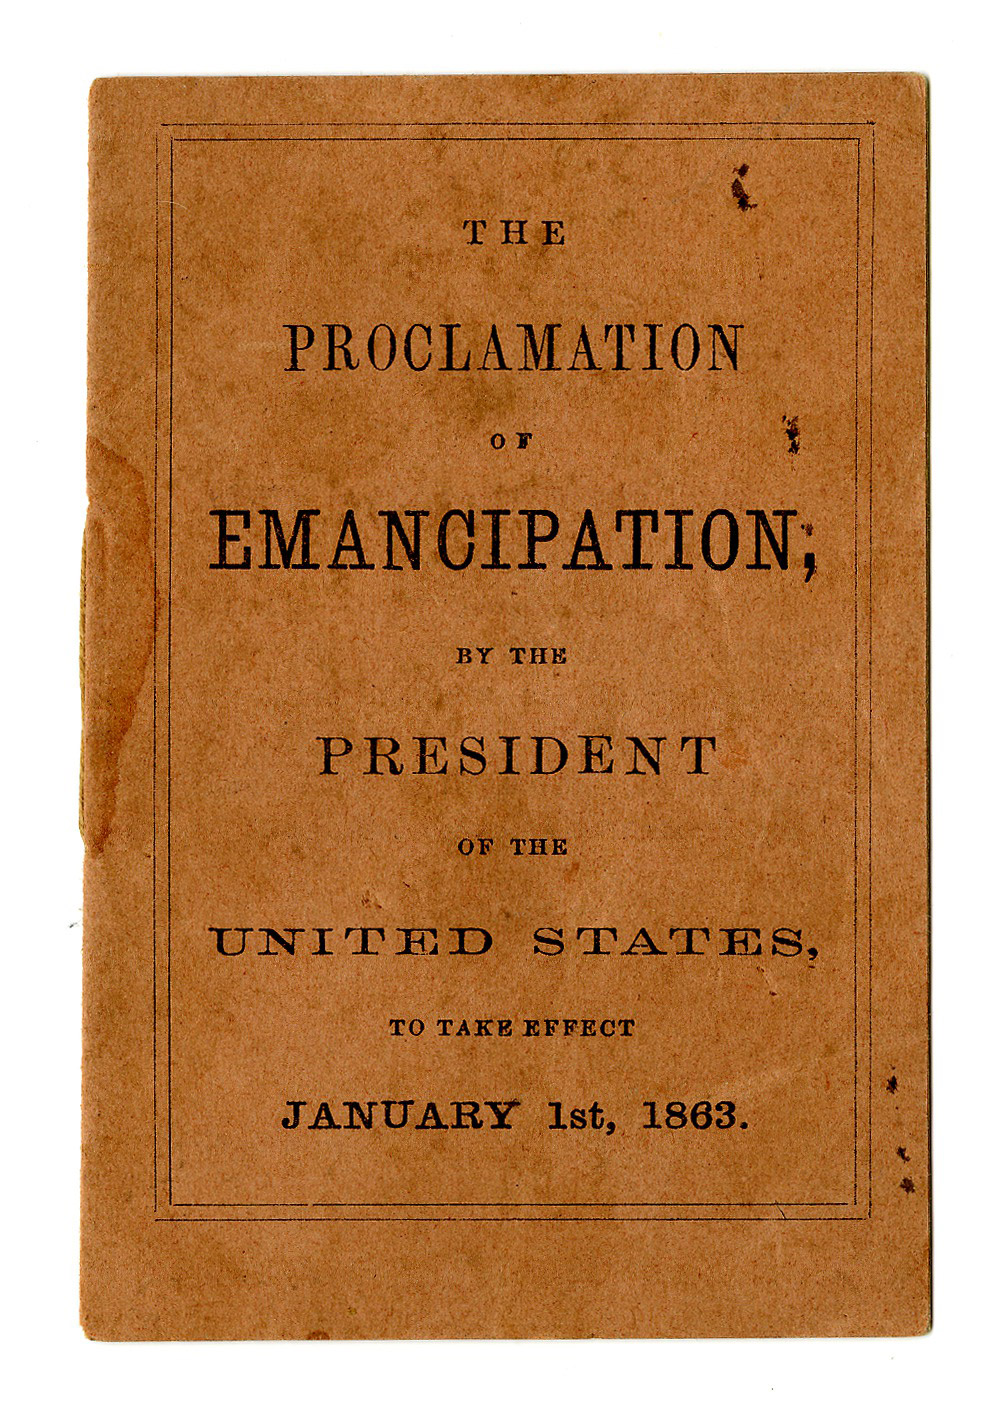 The Proclamation of Emancipation by the President of the                               United States, to take effect January 1st, 1863                                Written by President Abraham Lincoln and published by John Murray Forbes, 1862.